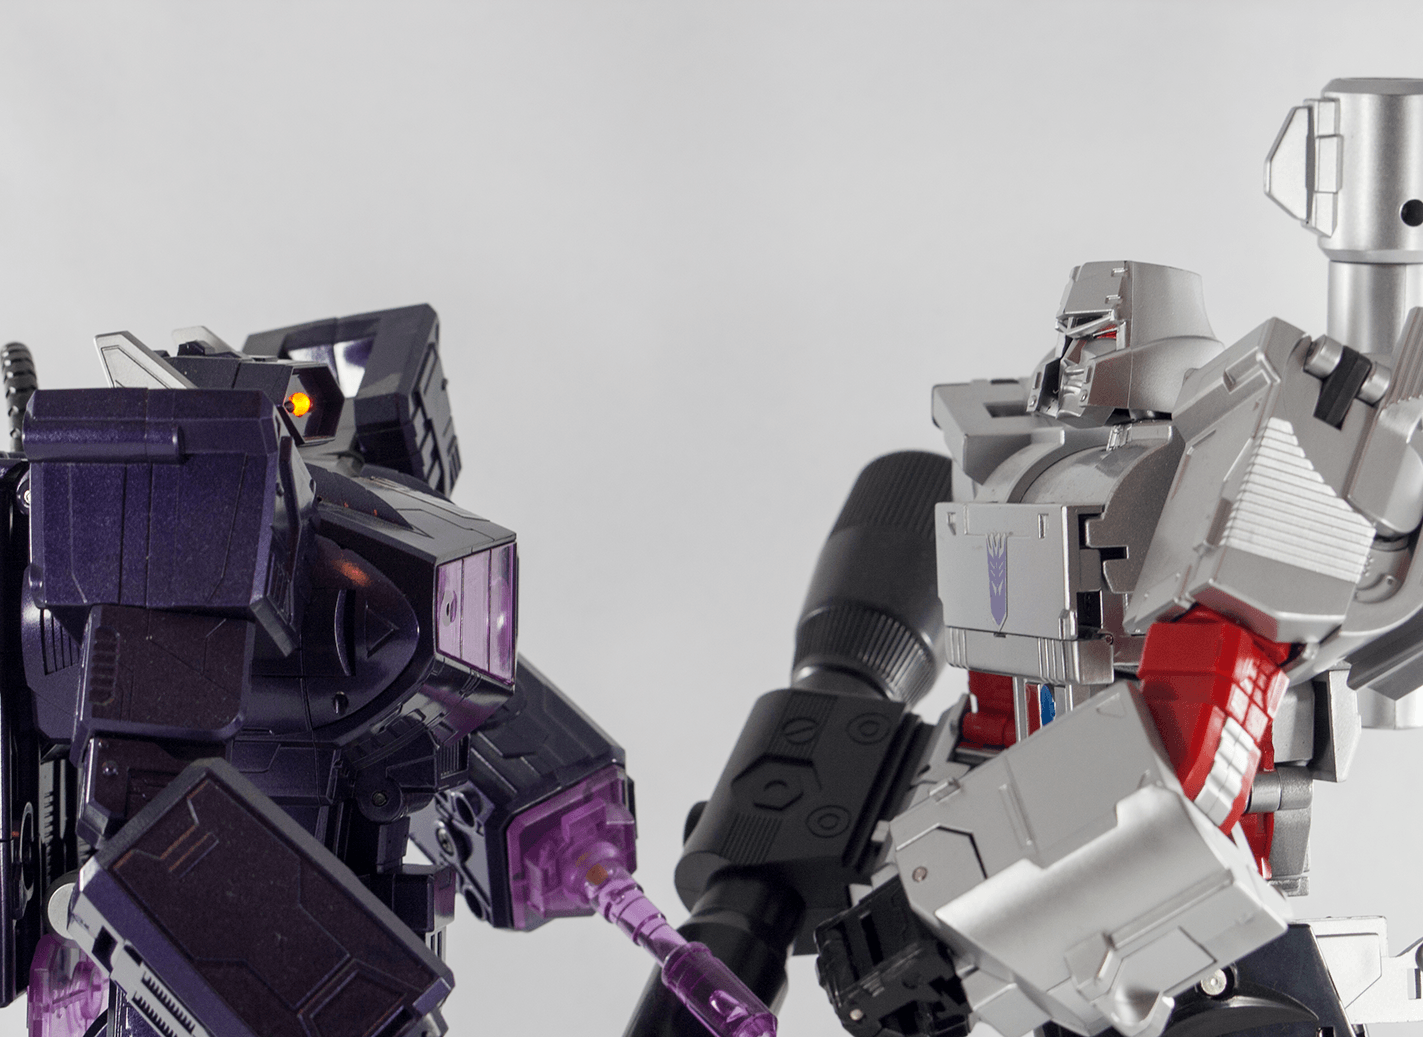 Megatron and Shockwave